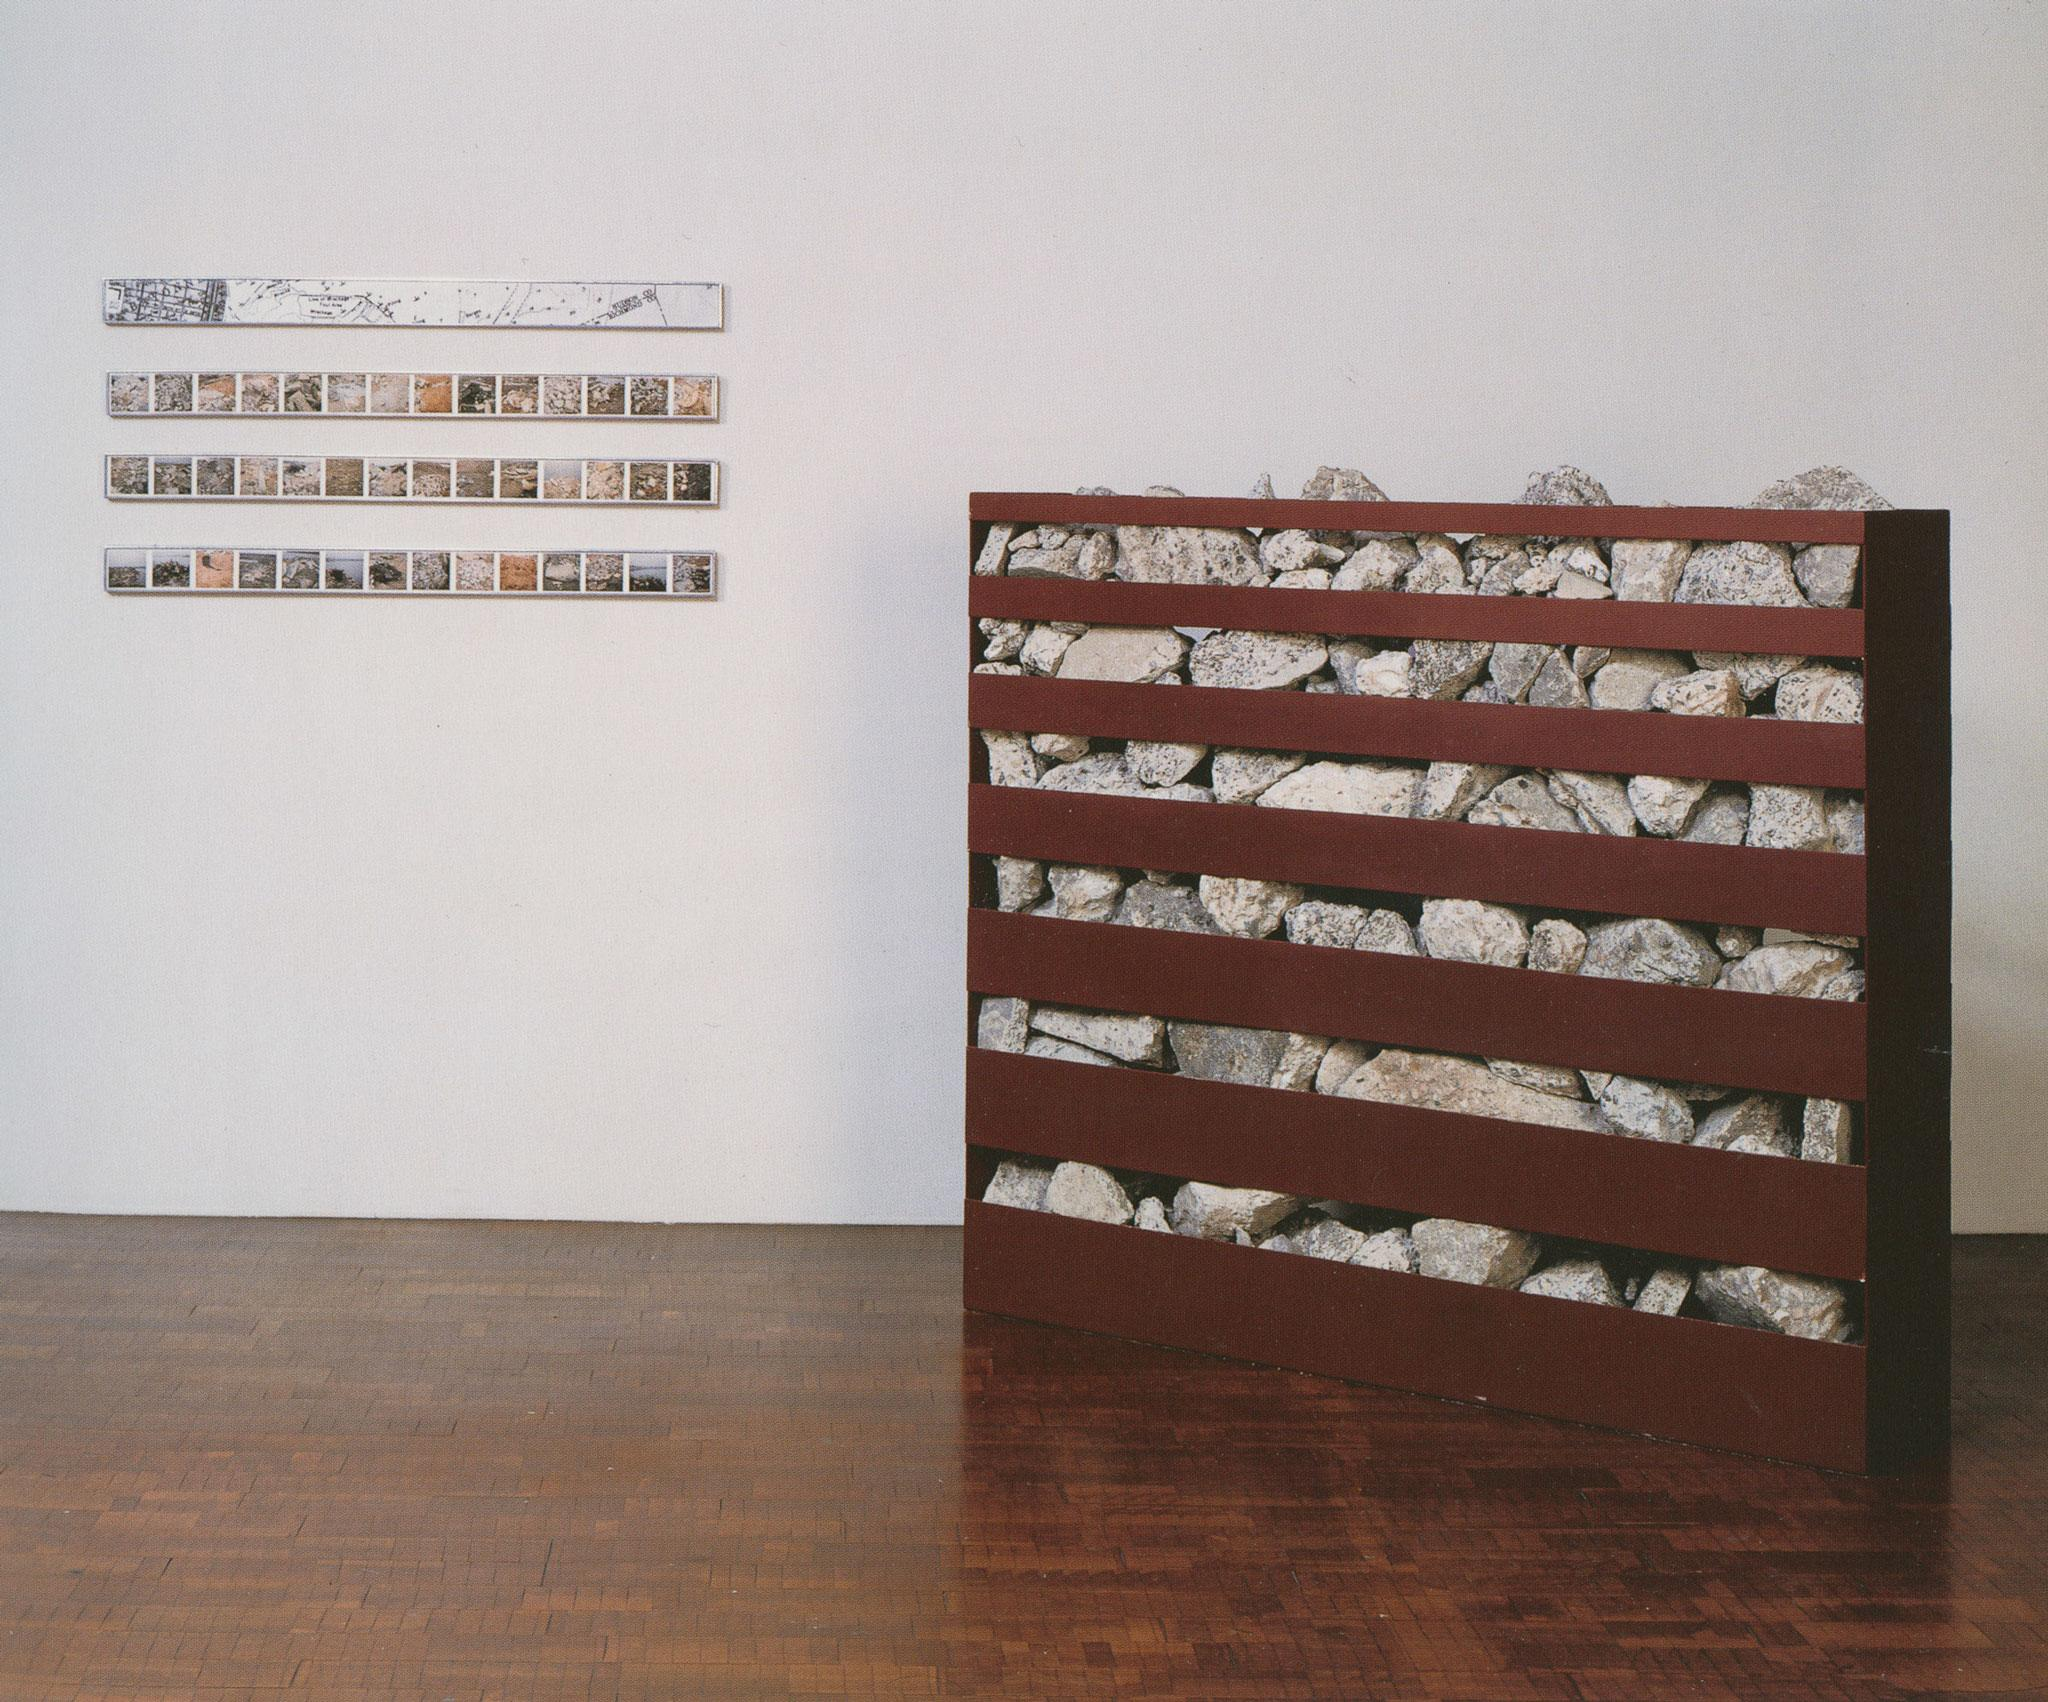 A metal bin positioned on the floor with horizontal openings that contains broken concrete. Four framed horizontal images on the wall behind the bin.